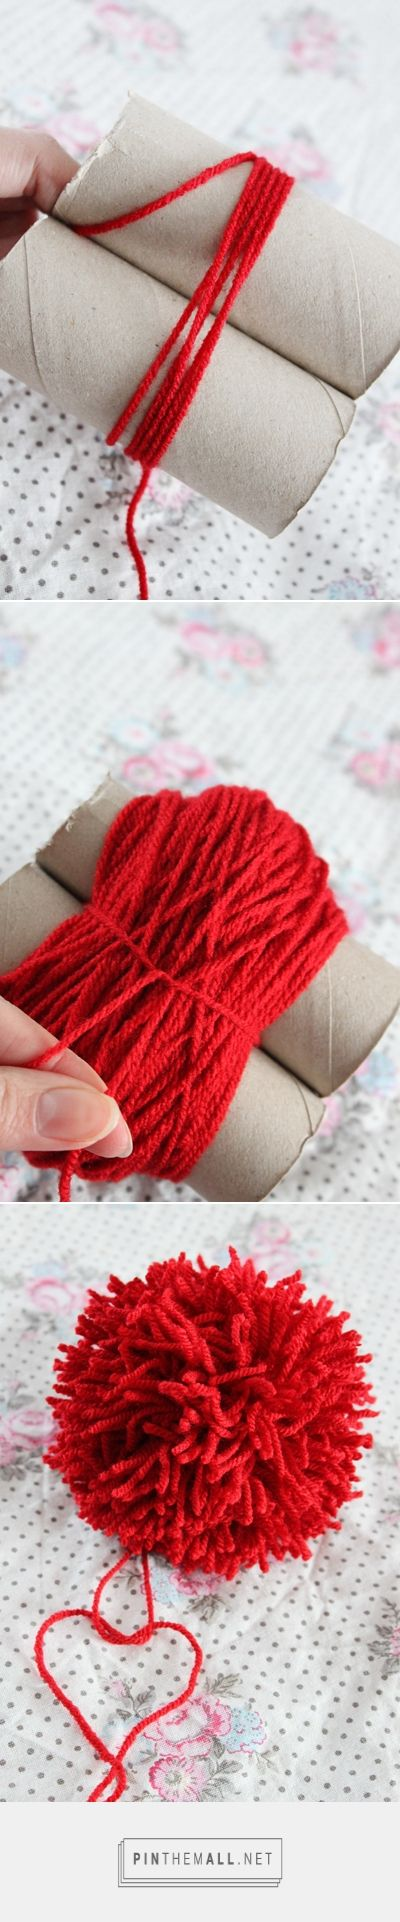 #Tutorial - How to make really big pompoms -- from a Swedish blog with pictures that need no translation. Yet another use for toilet paper rolls! ❤️ KnittingGuru -- http://www.pinterest.com/KnittingGuru